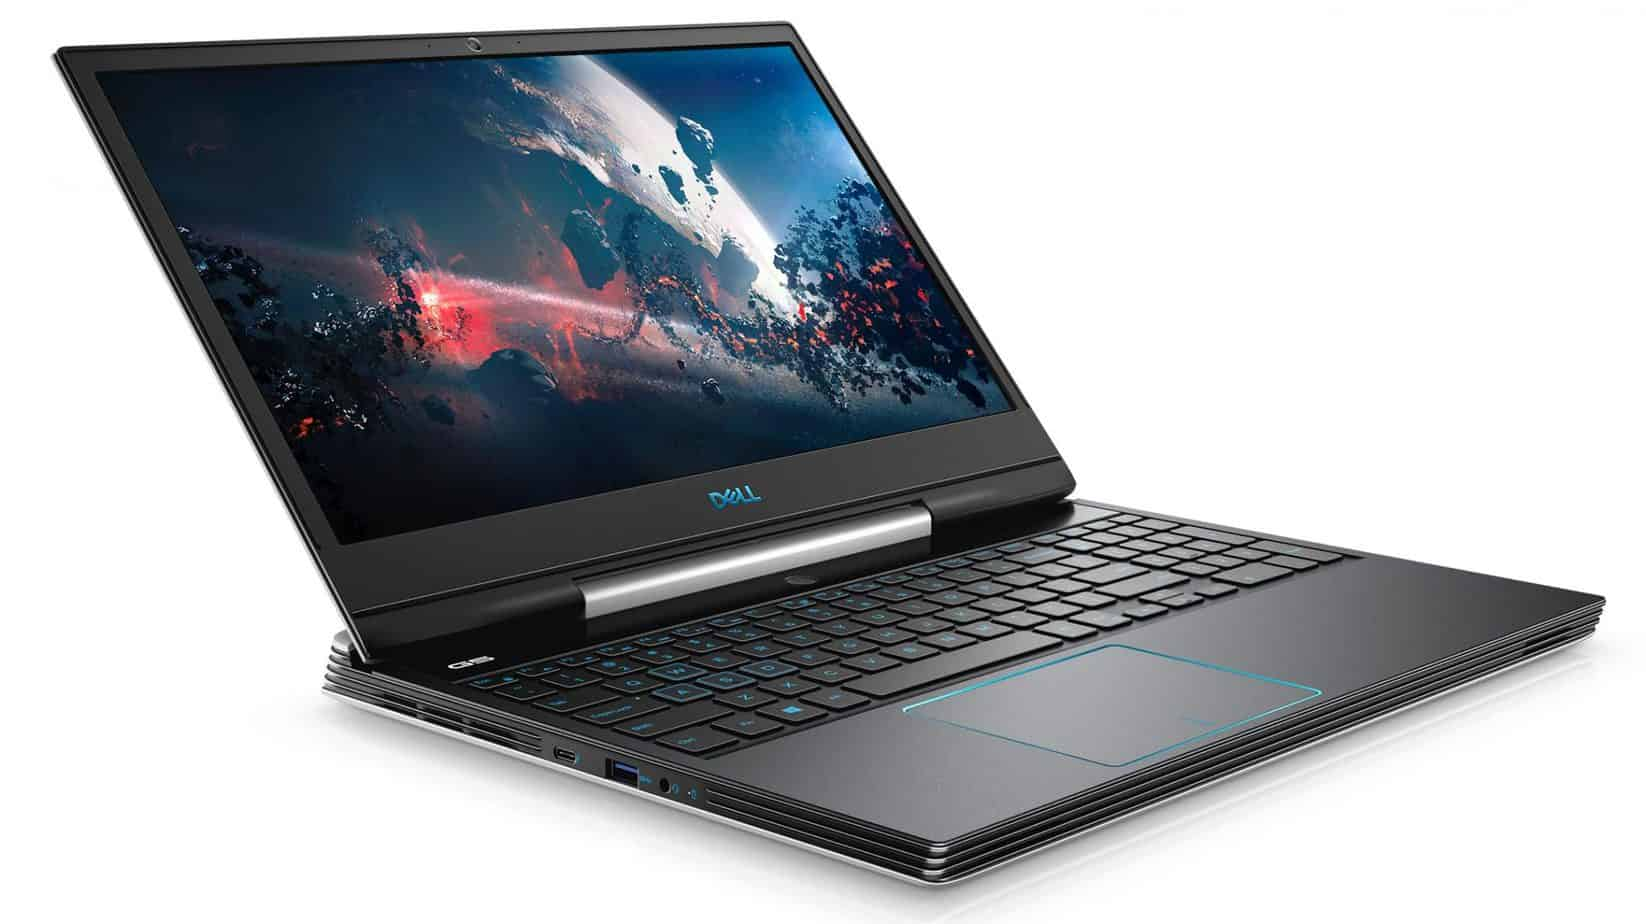 The Dell G5 15 gaming laptop